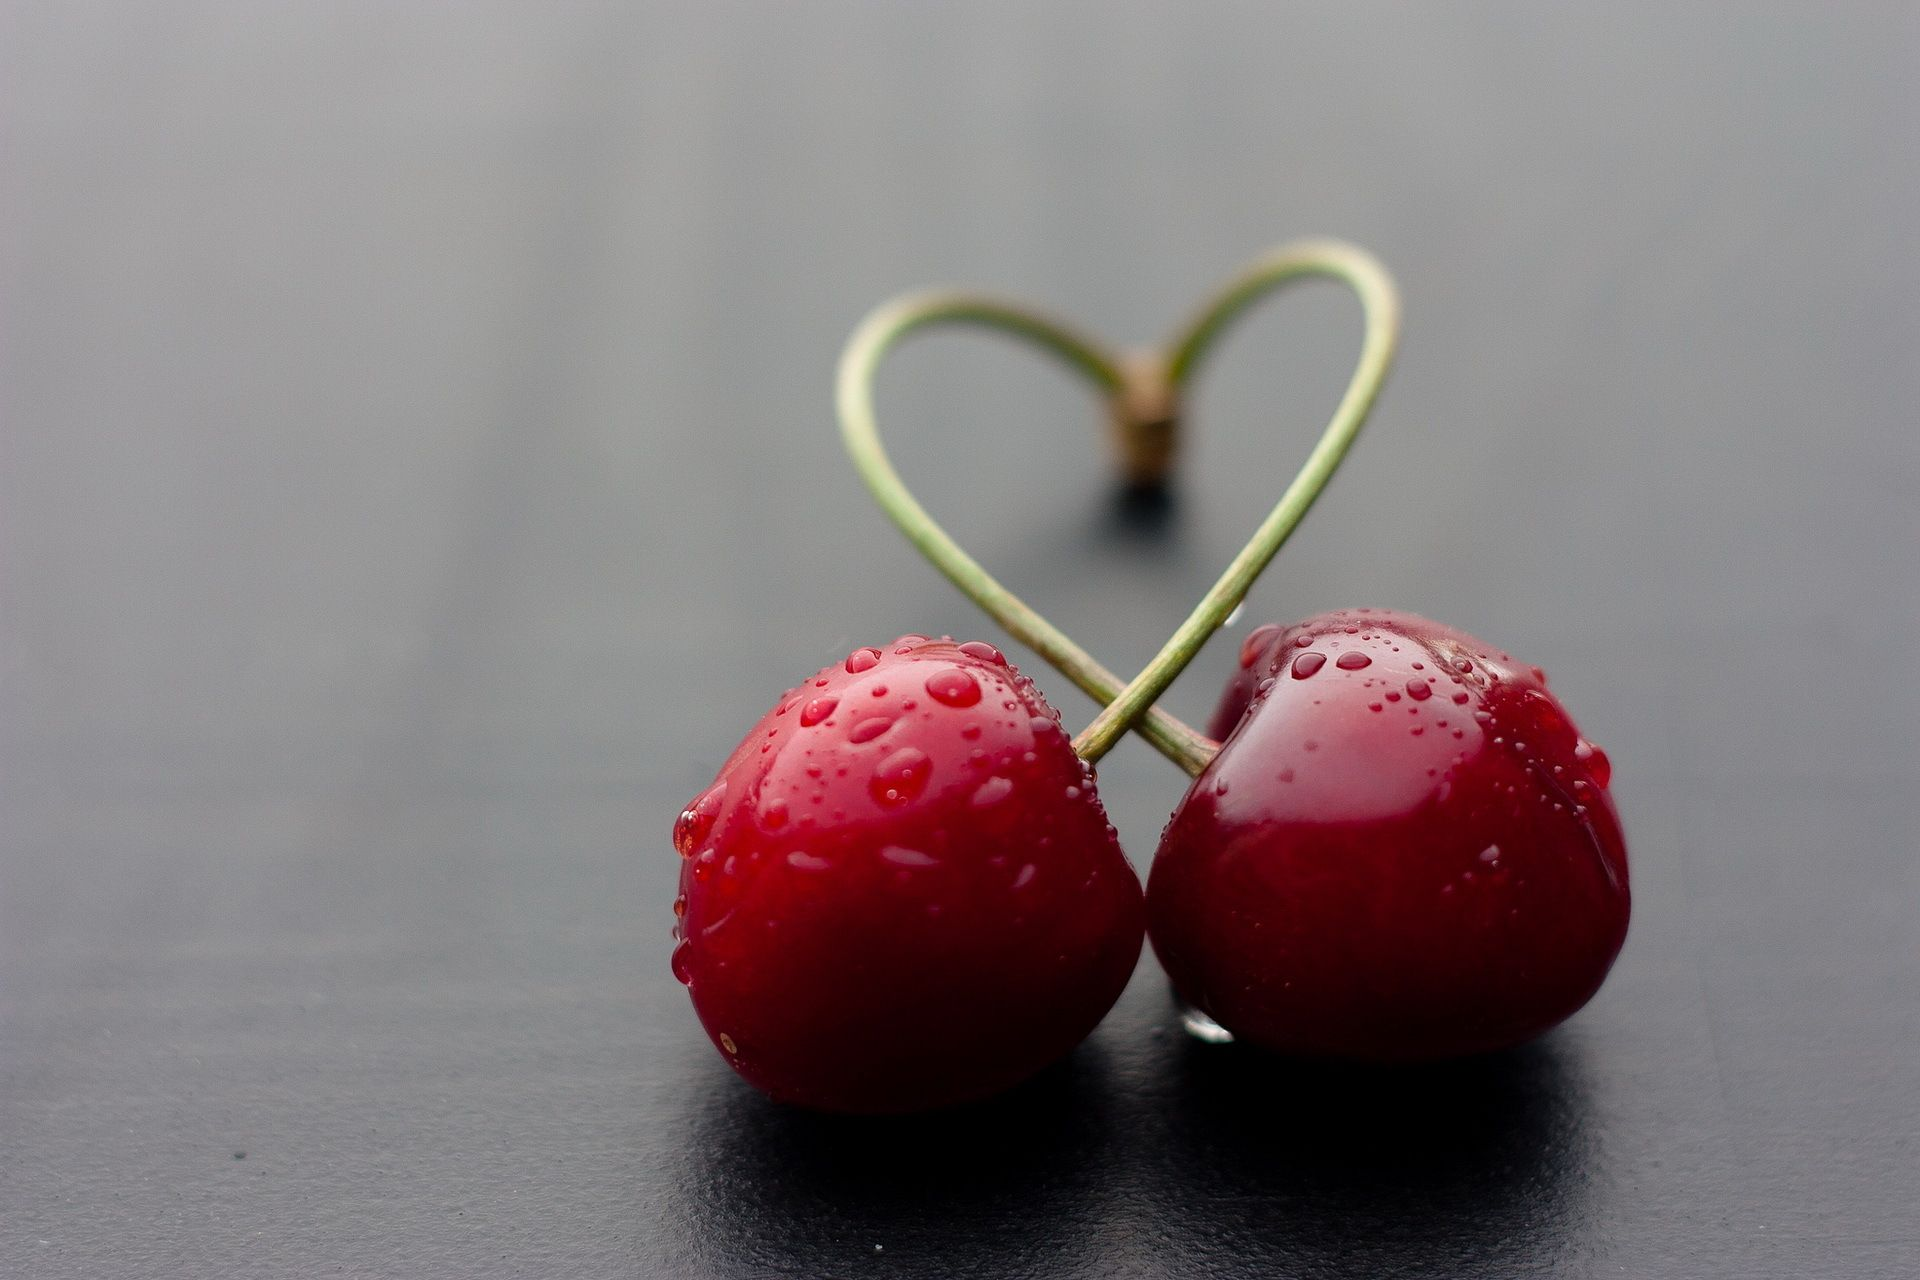 Cute Love Wallpapers Find Best Latest For Your PC Desktop Background Mobile Phones